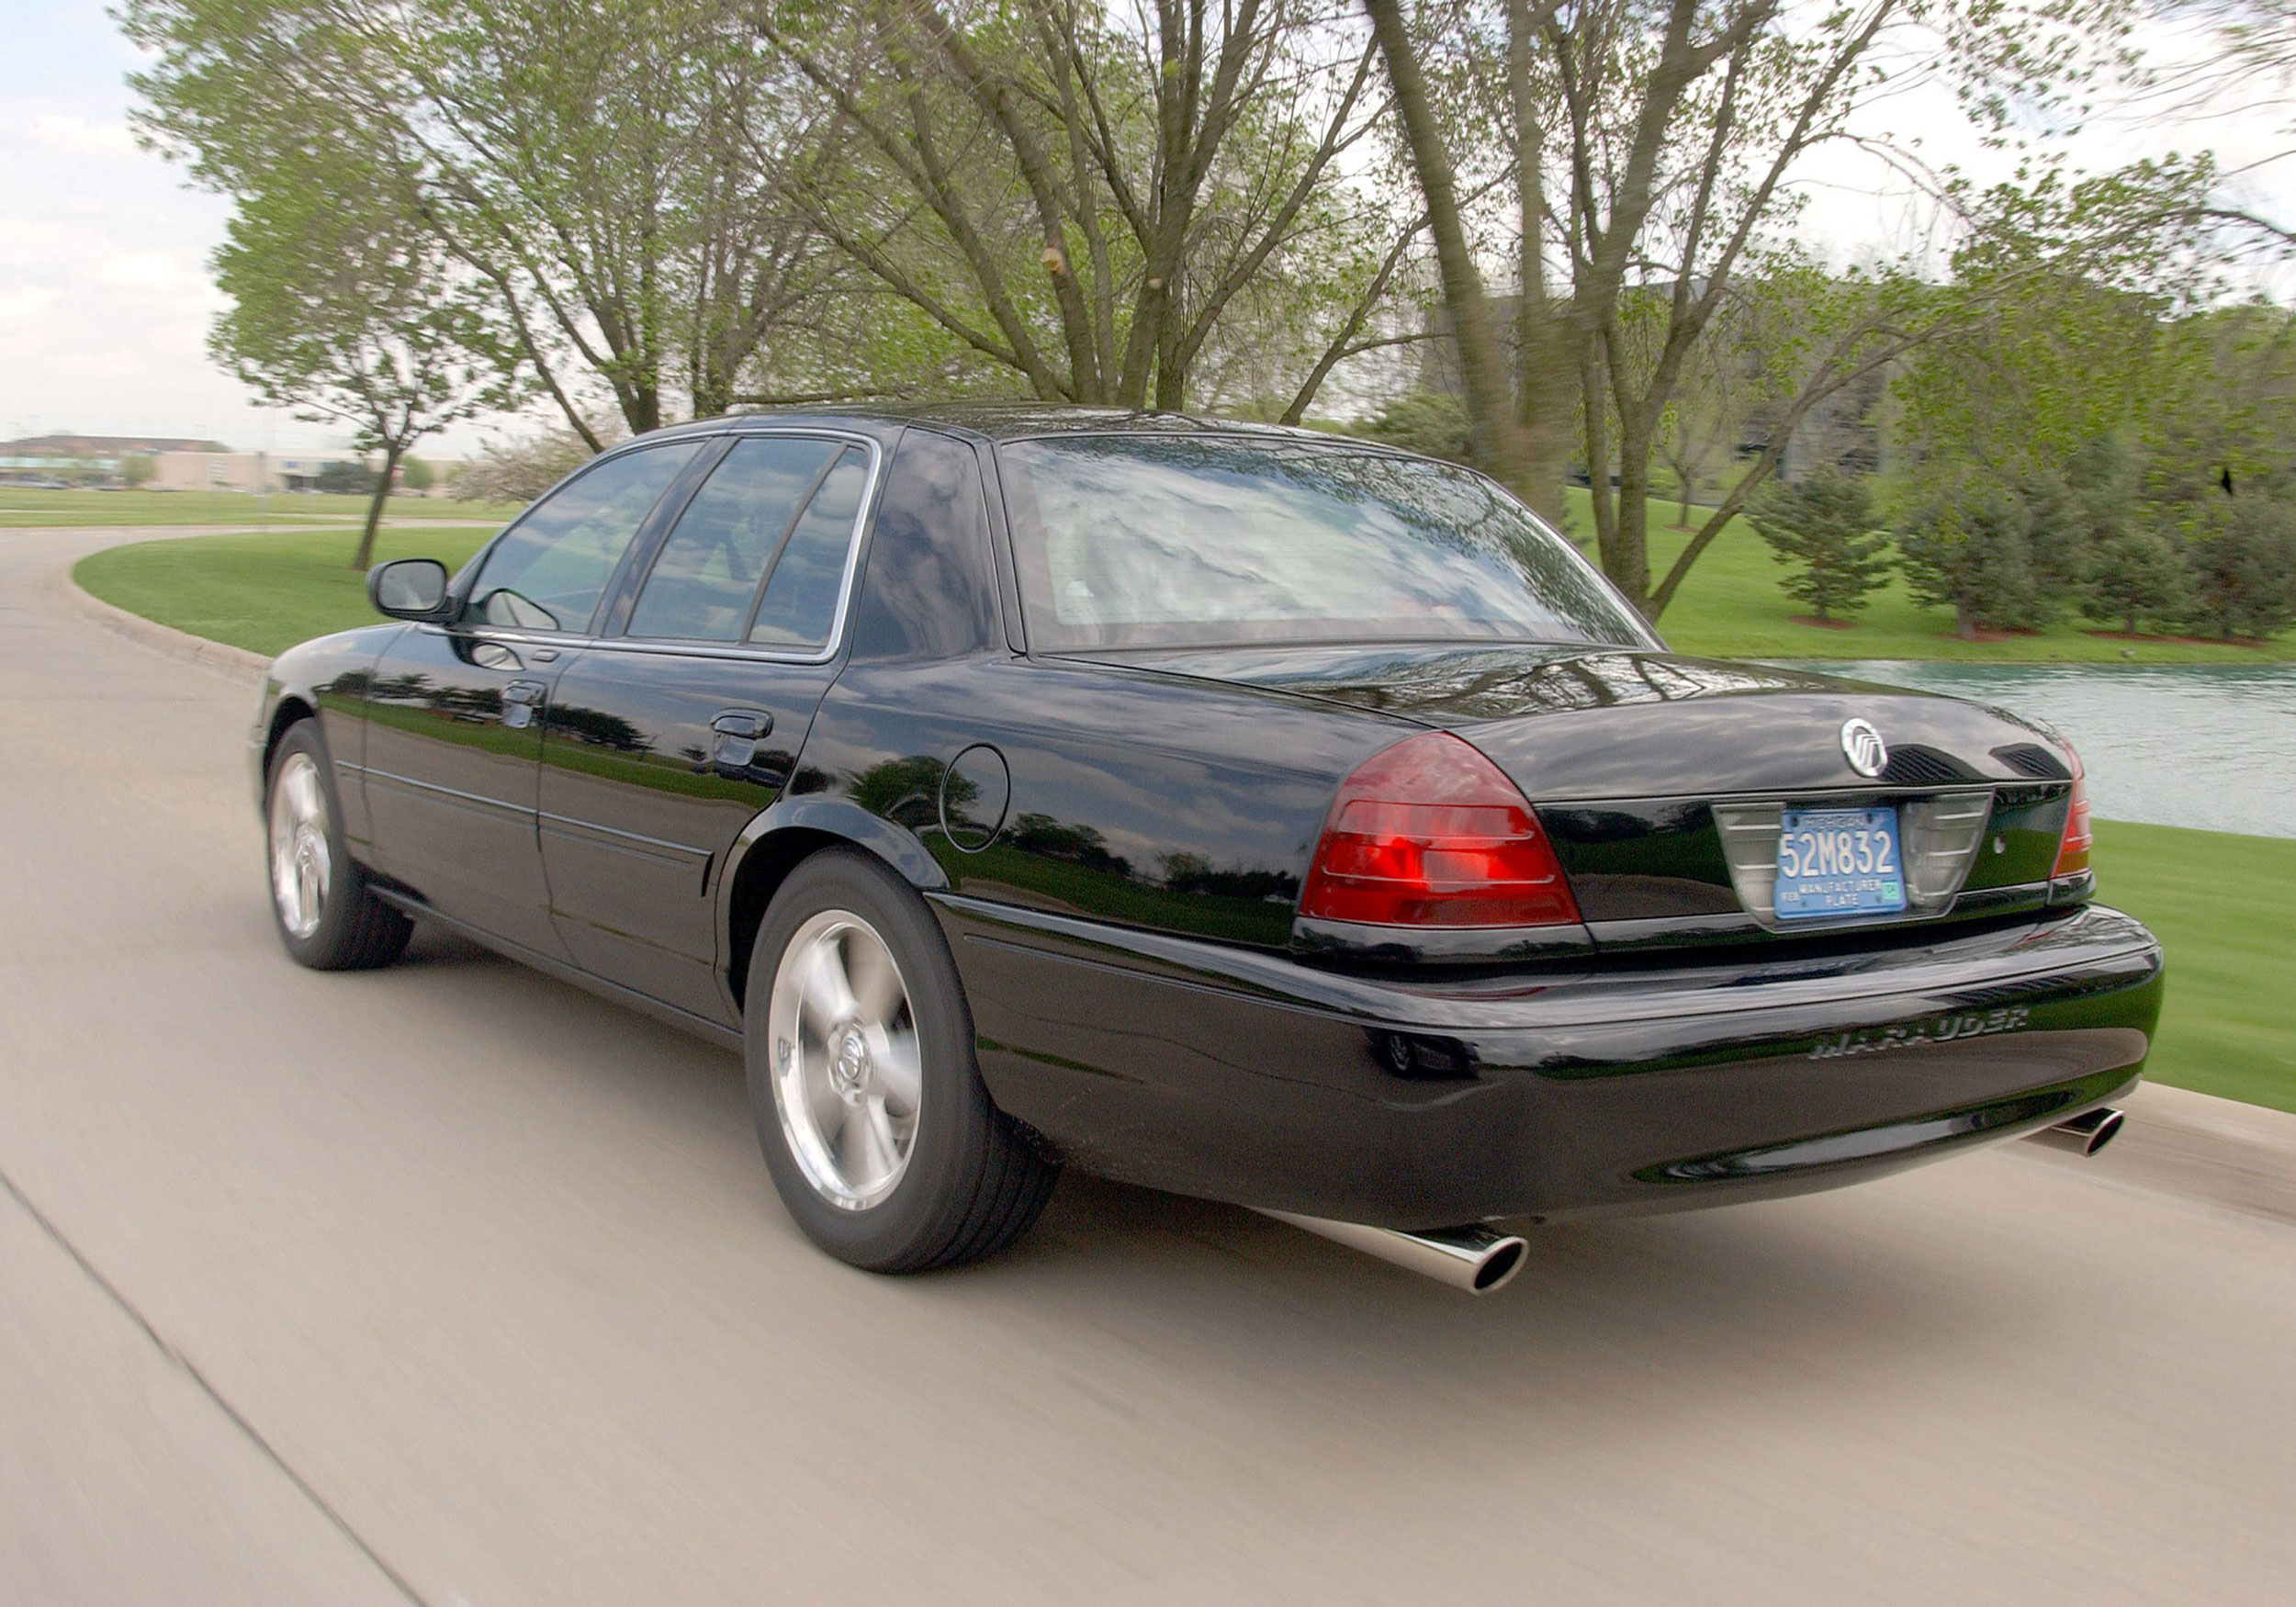 After a slow rise, 2003–04 Mercury Marauder values are suddenly spiking